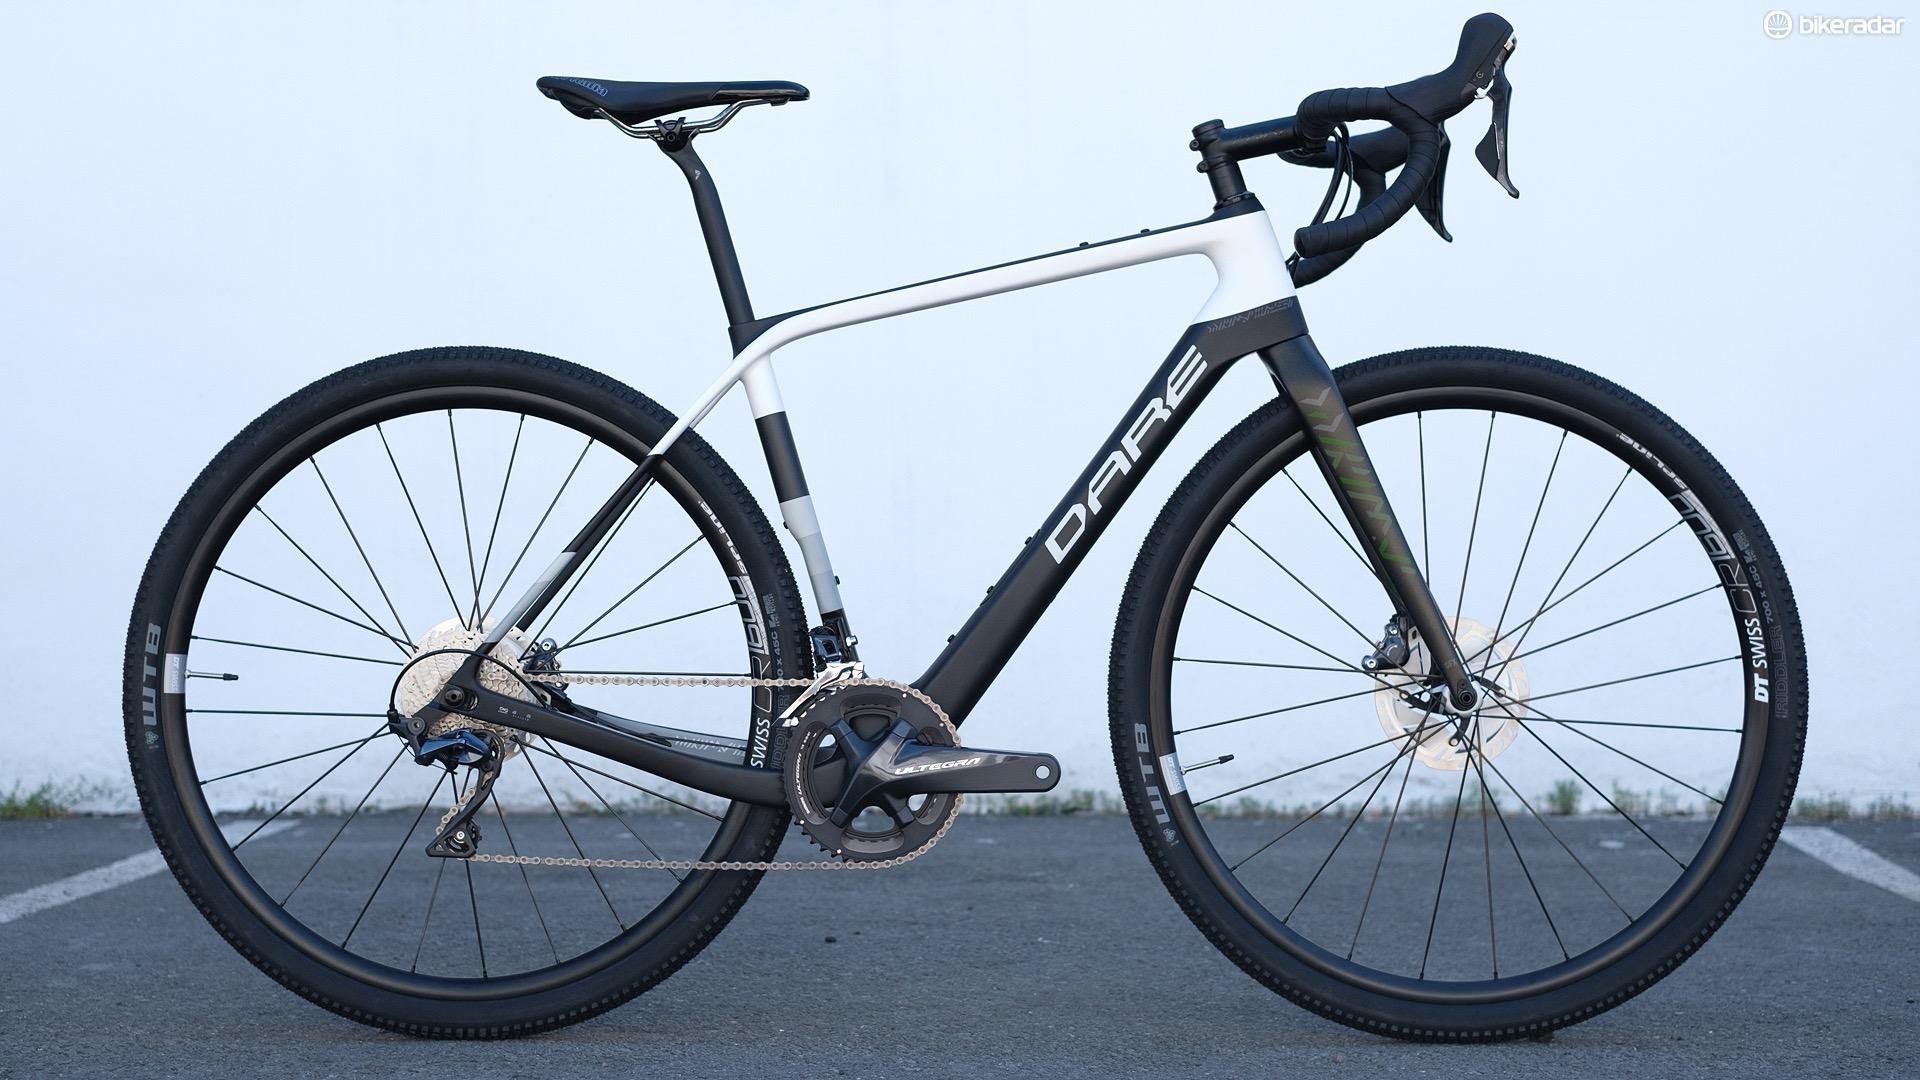 The Dare GFX gravel bike shares its chassis with the company's endurance road bike, the GFE